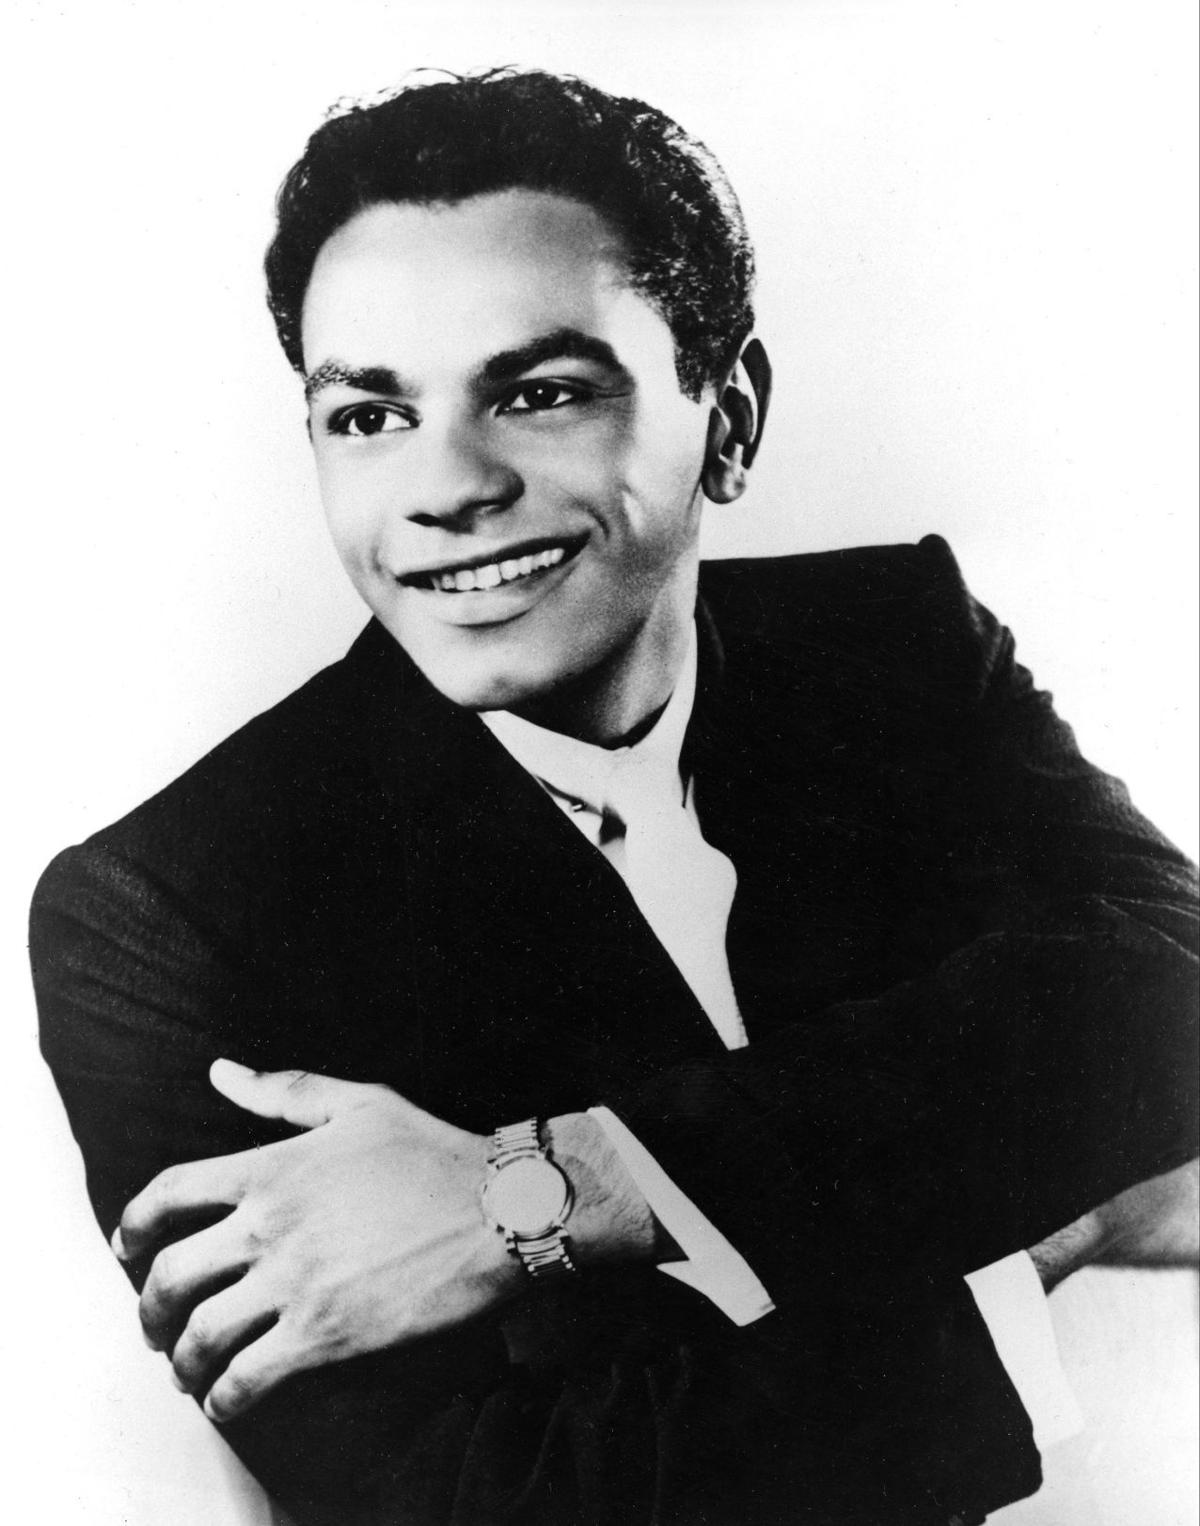 Johnny Mathis Wedding.Six Decades In Johnny Mathis Still The Master Of Romantic